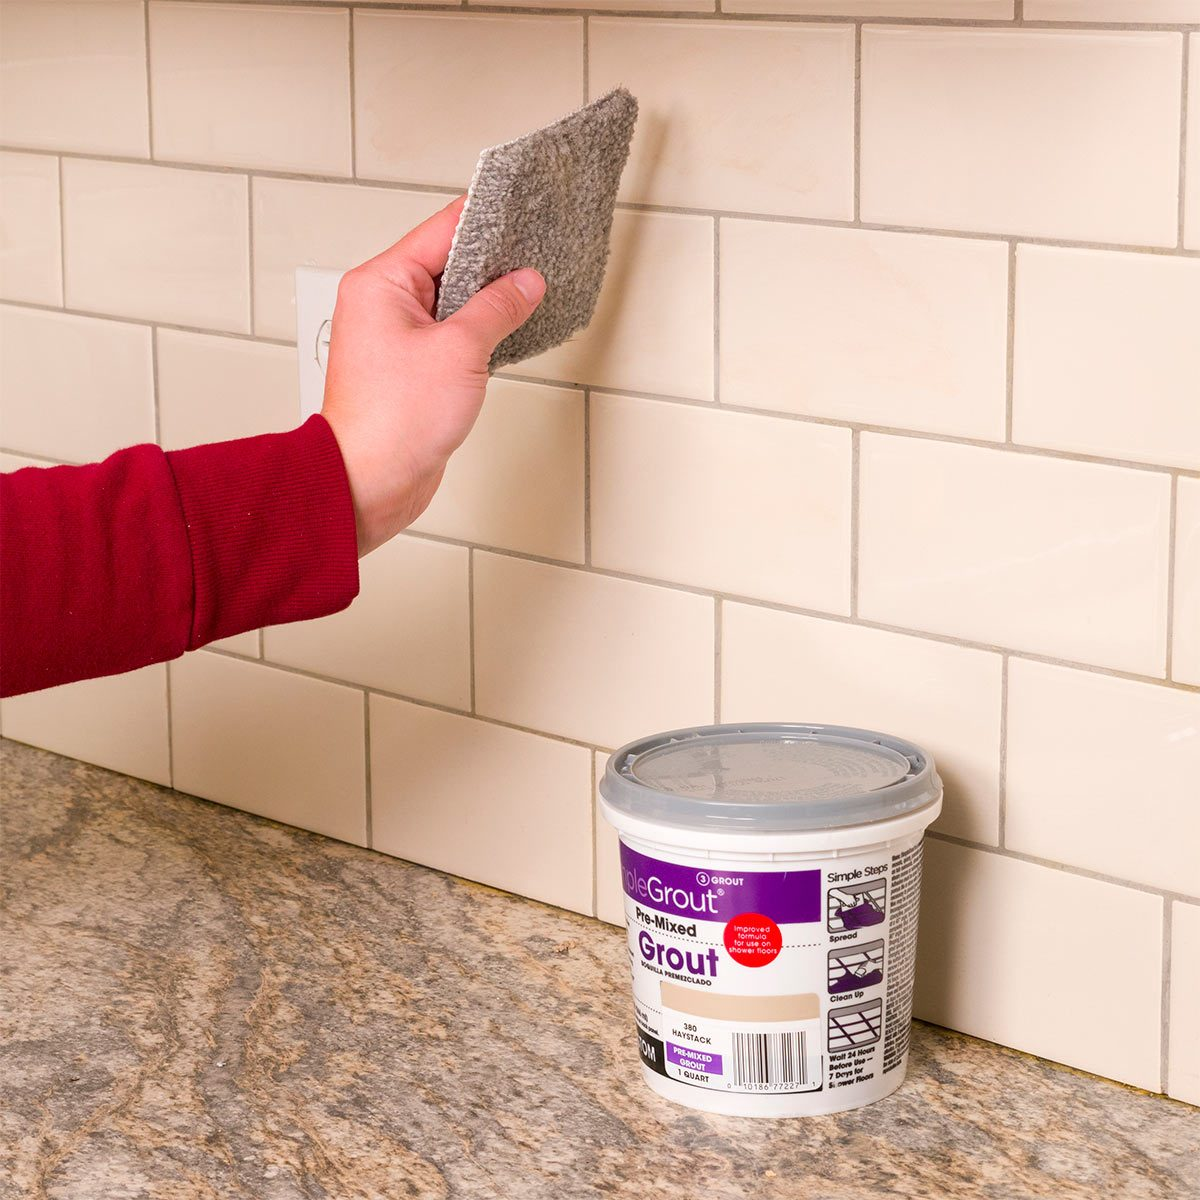 How to regrout bathroom tile fixing bathroom walls family handyman buff away grout haze with carpet how to grout tile dailygadgetfo Image collections